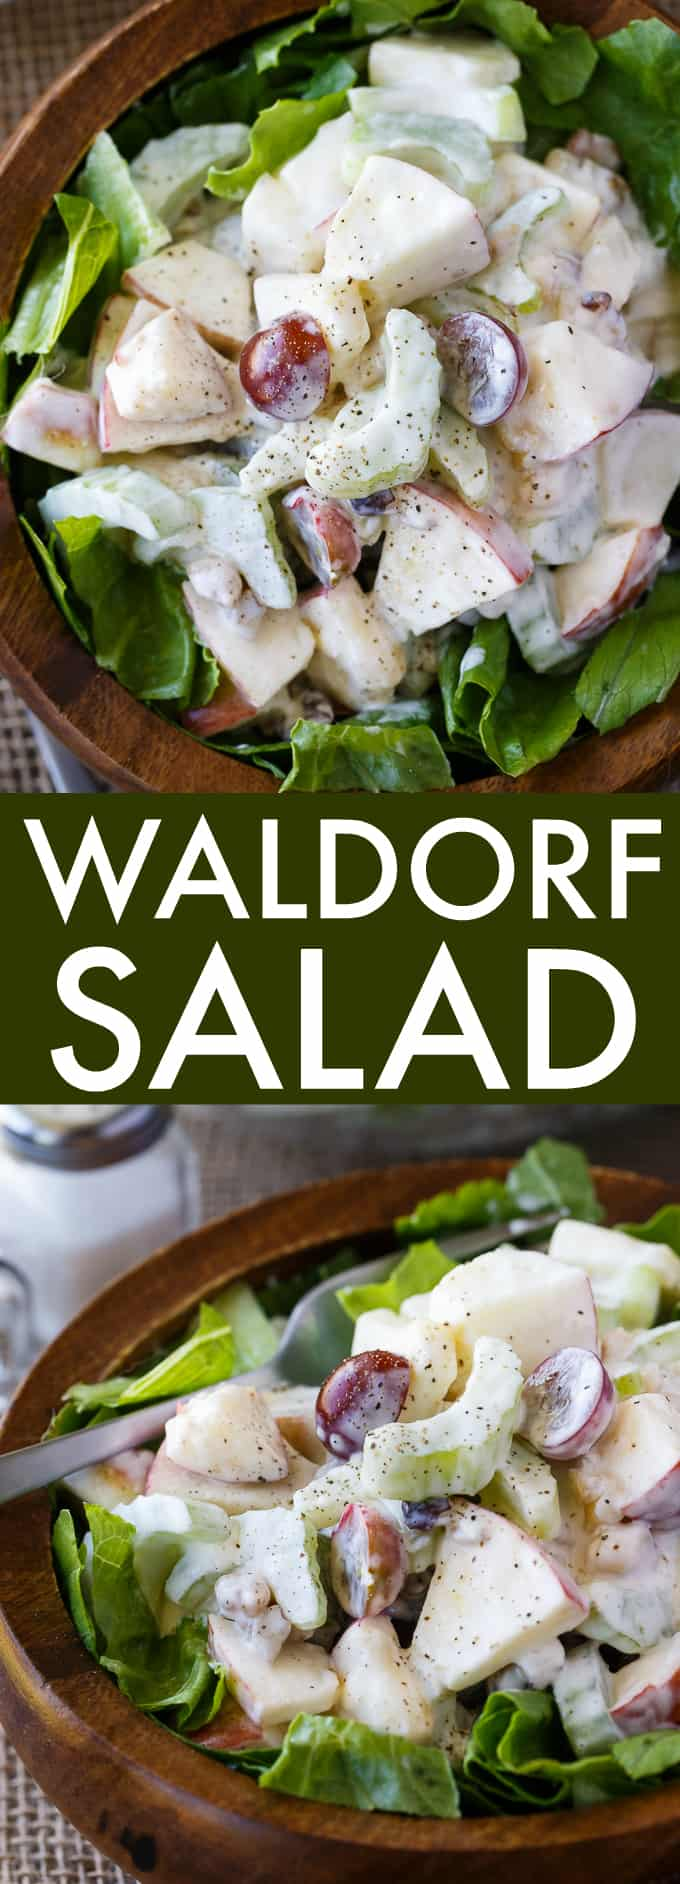 Waldorf Salad - The famous salad from the Waldorf-Astoria Hotel! It's loaded with fruit and nuts in a creamy, tangy dressing.